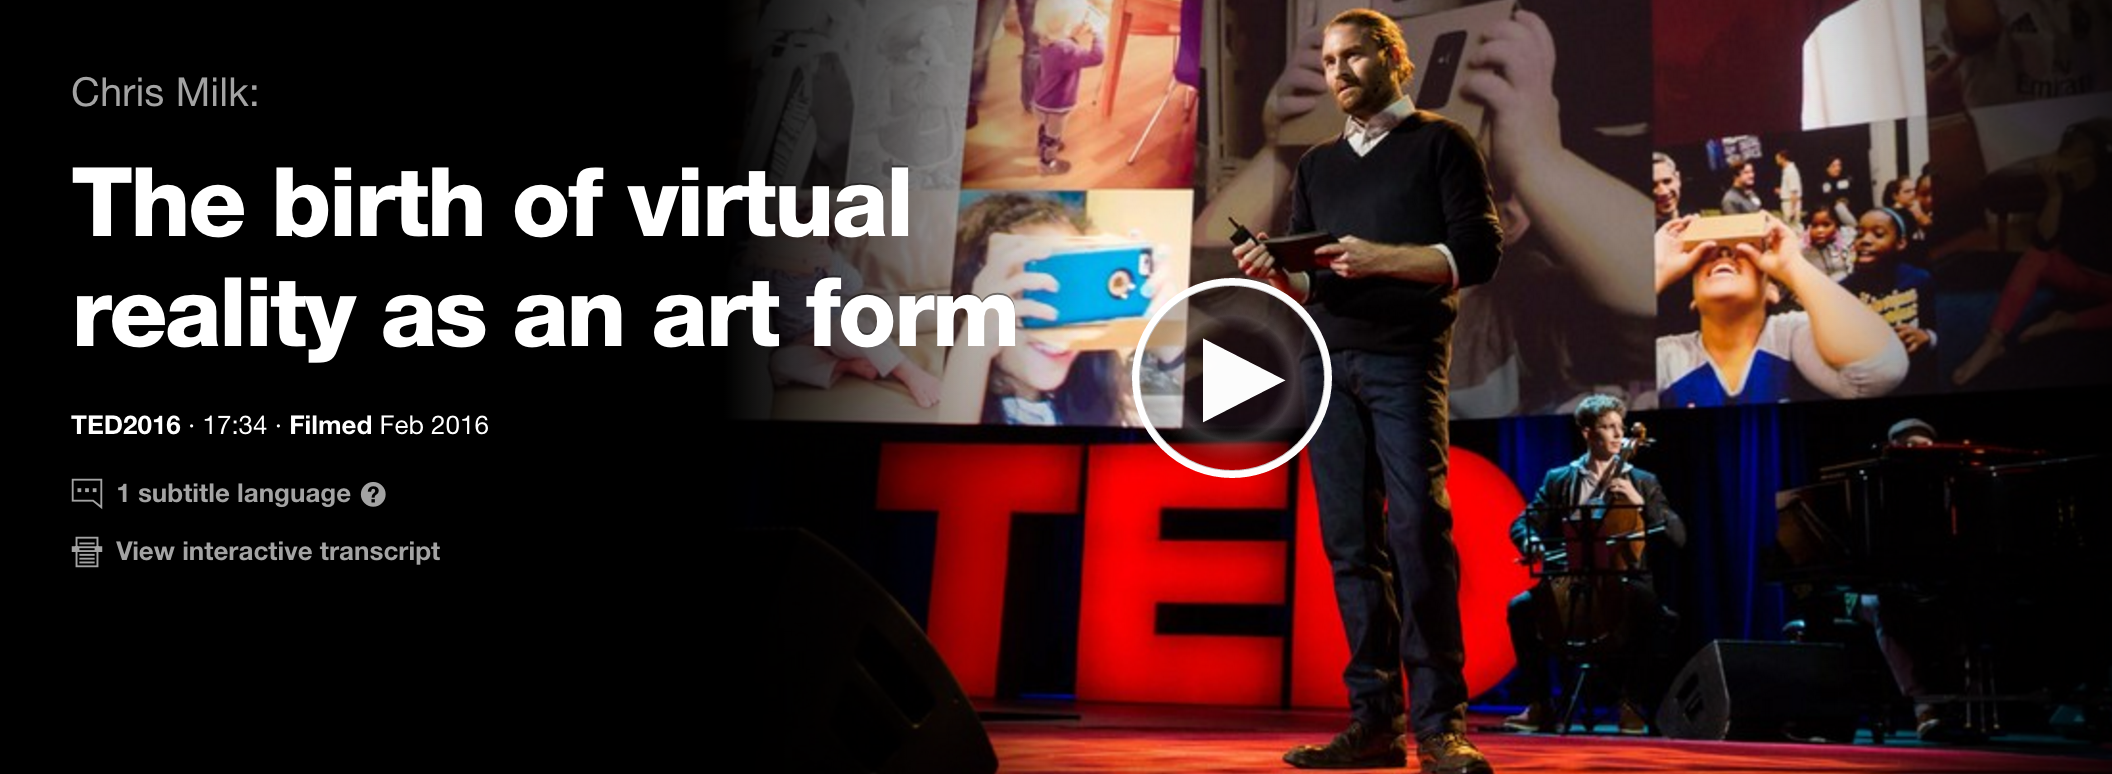 Click on the image to view the TED talk